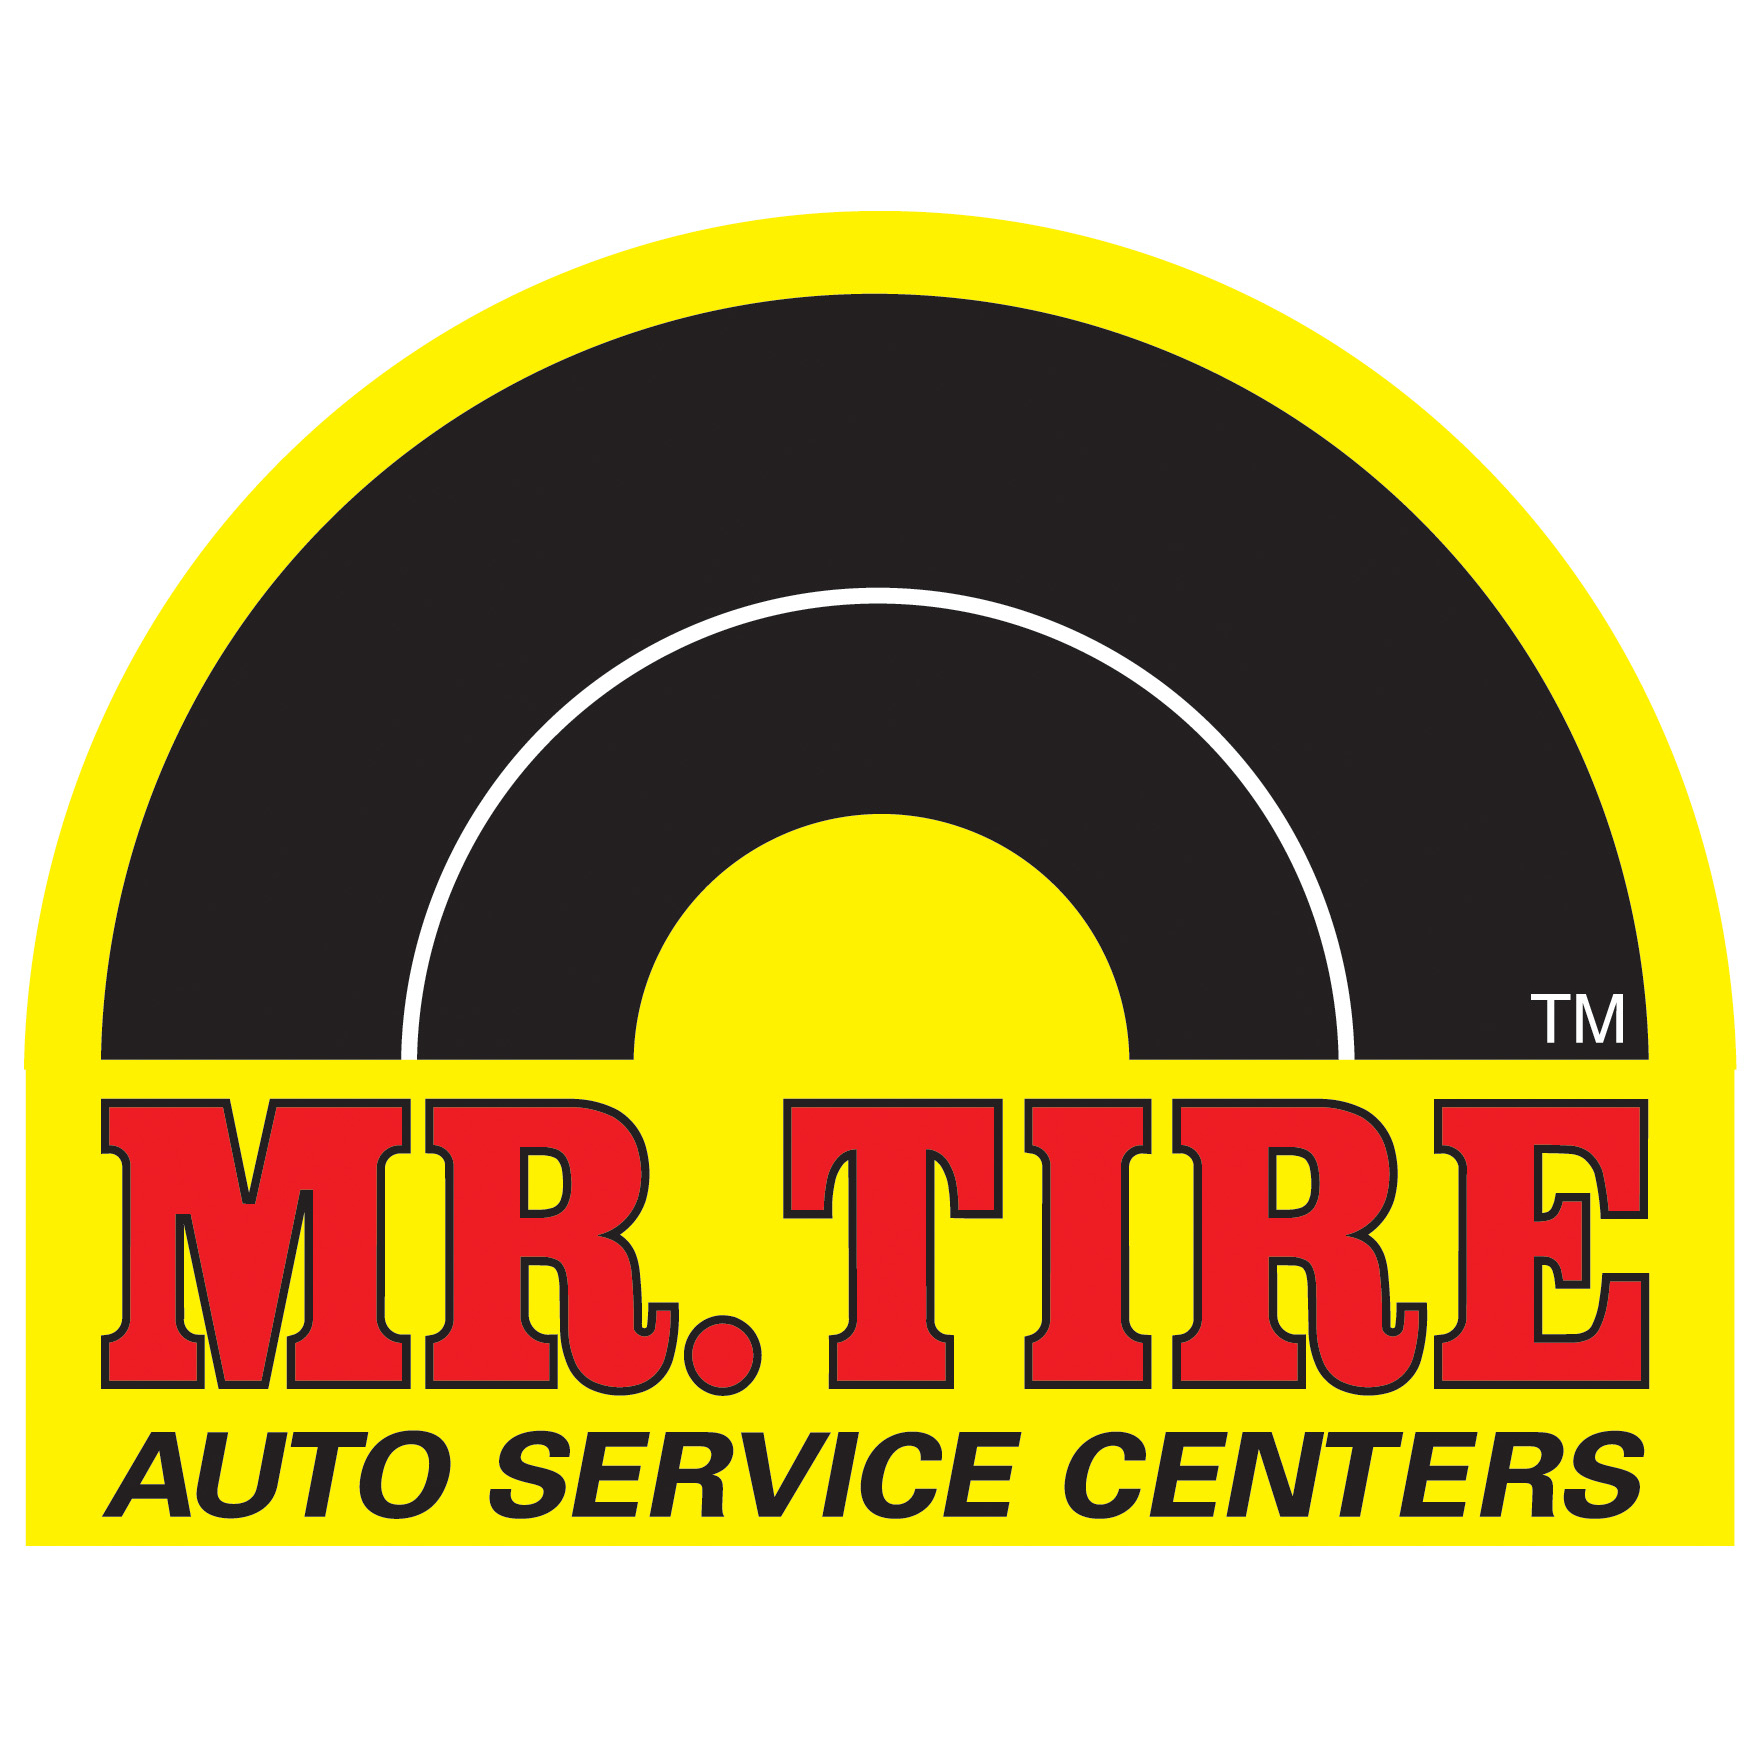 Mr Tire Auto Service Centers - Marion, OH - General Auto Repair & Service